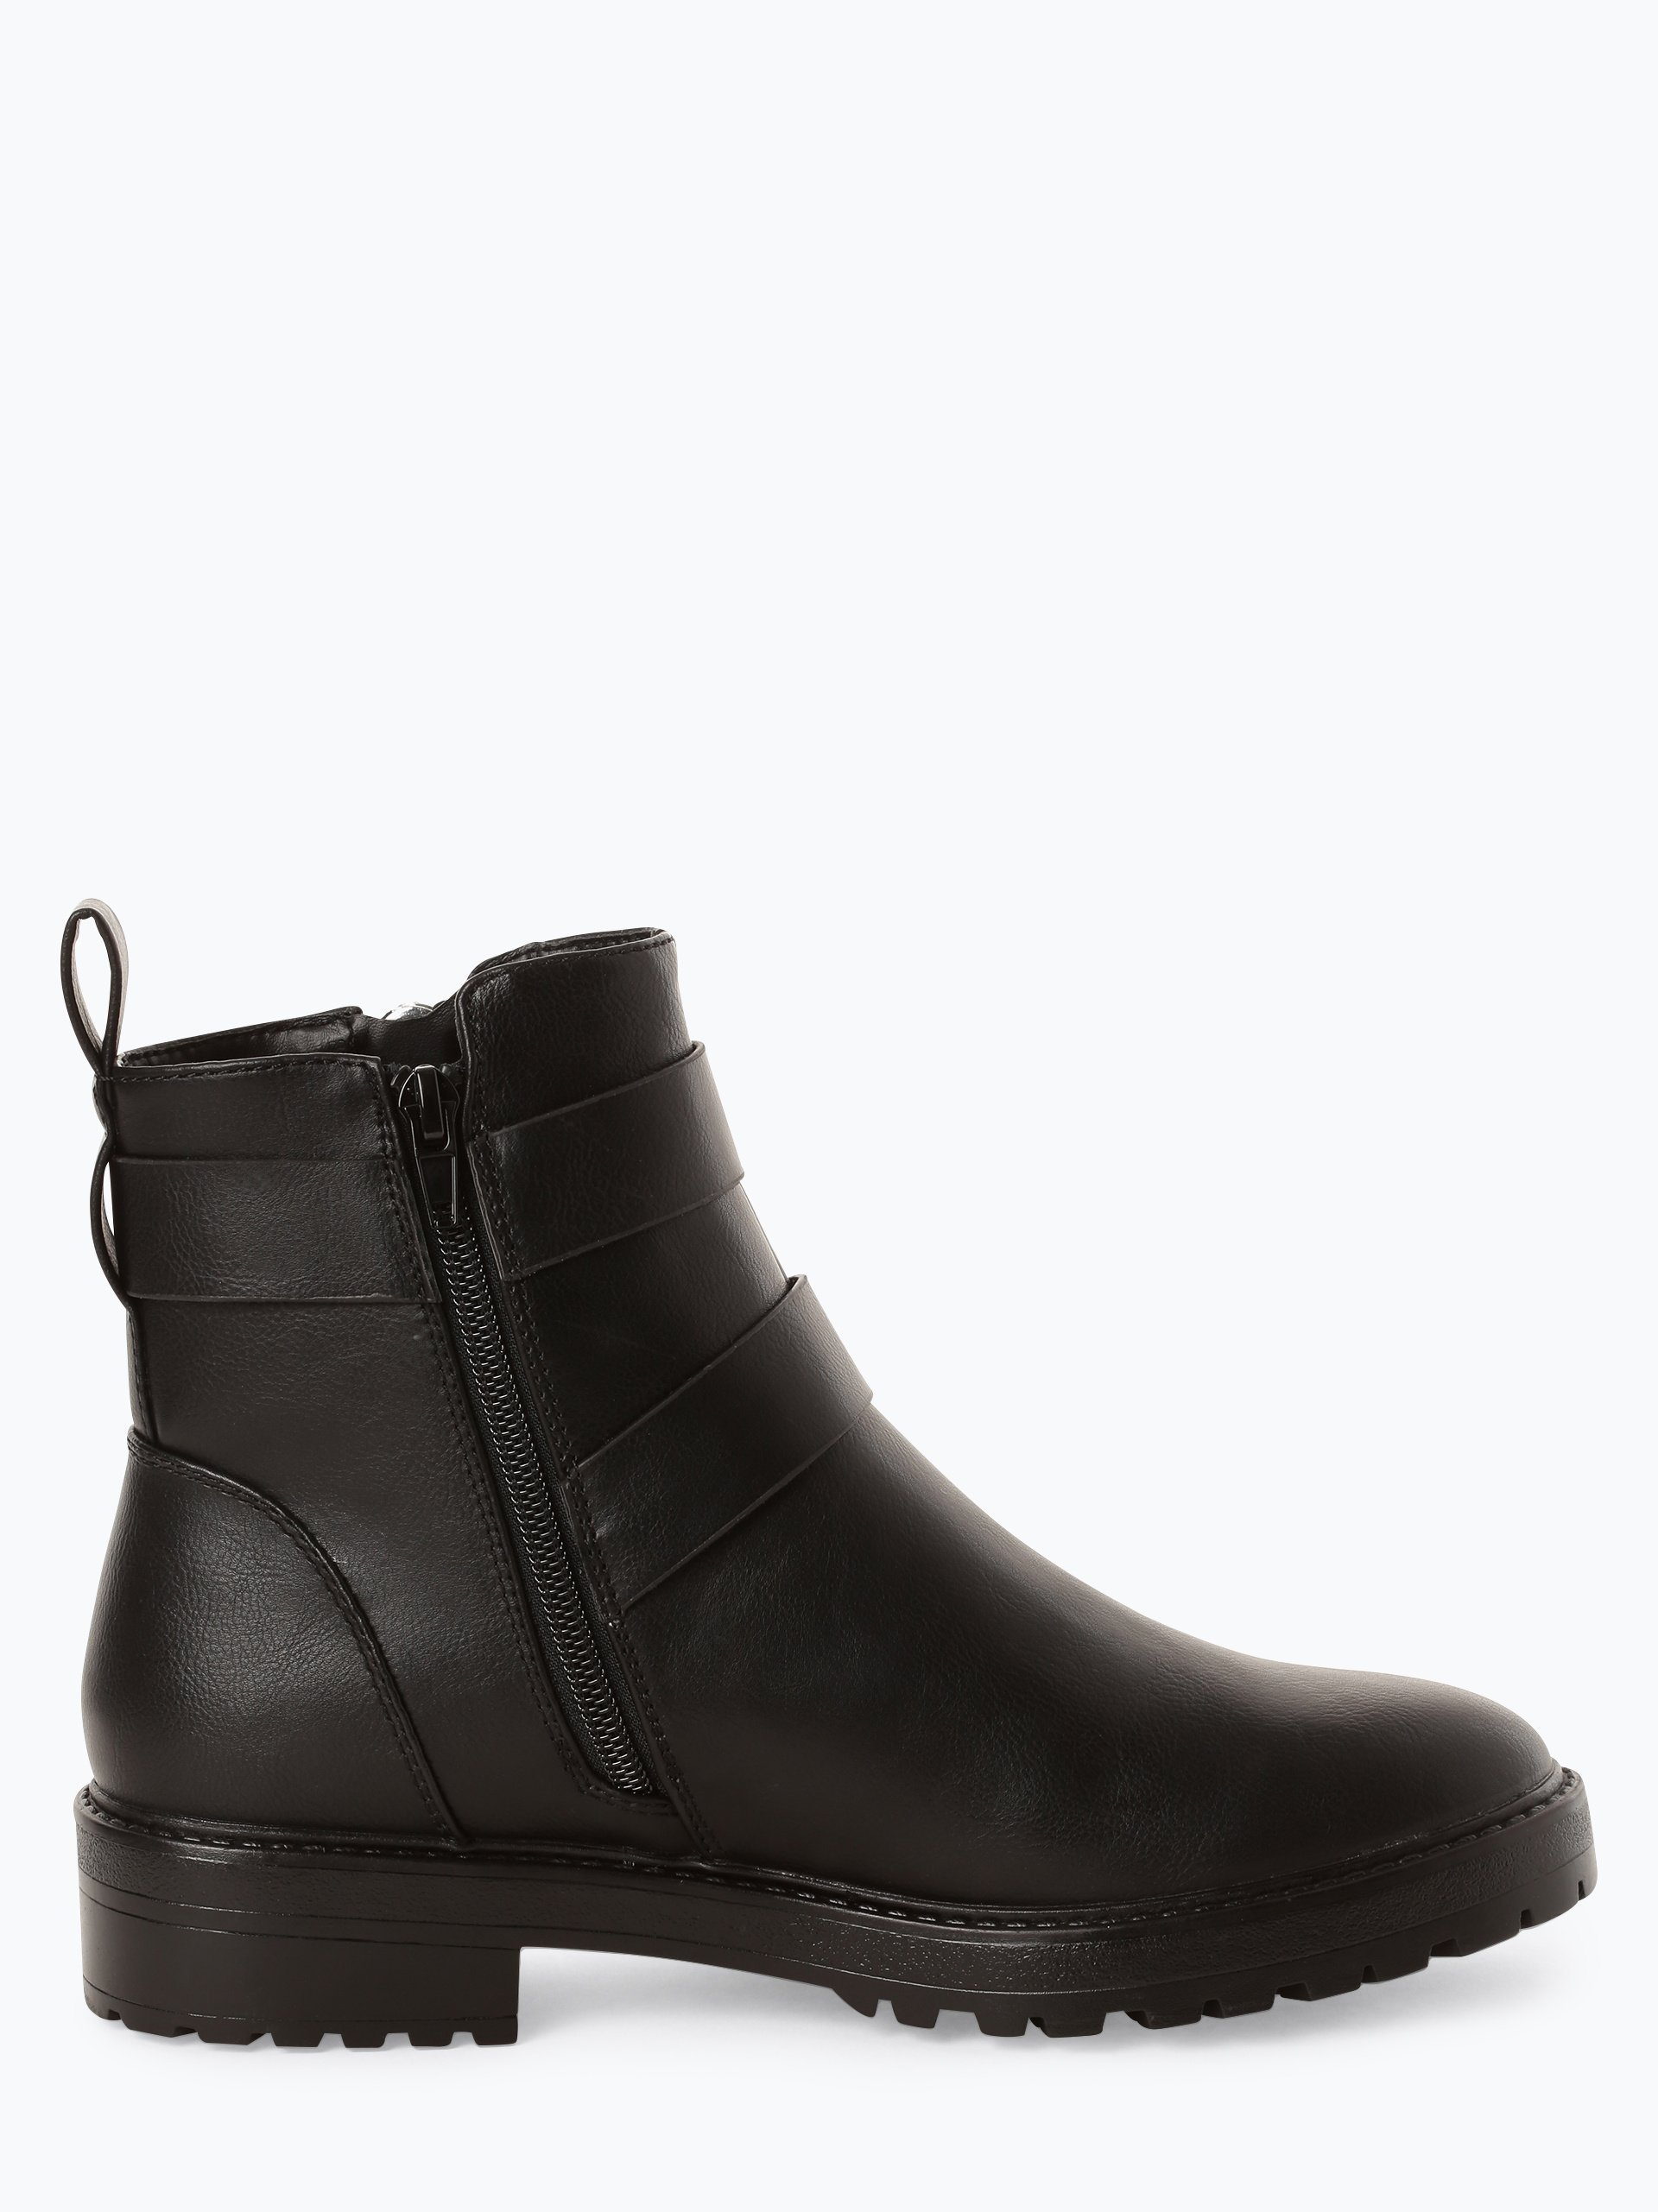 ONLY Damen Boots - Bad Buckle